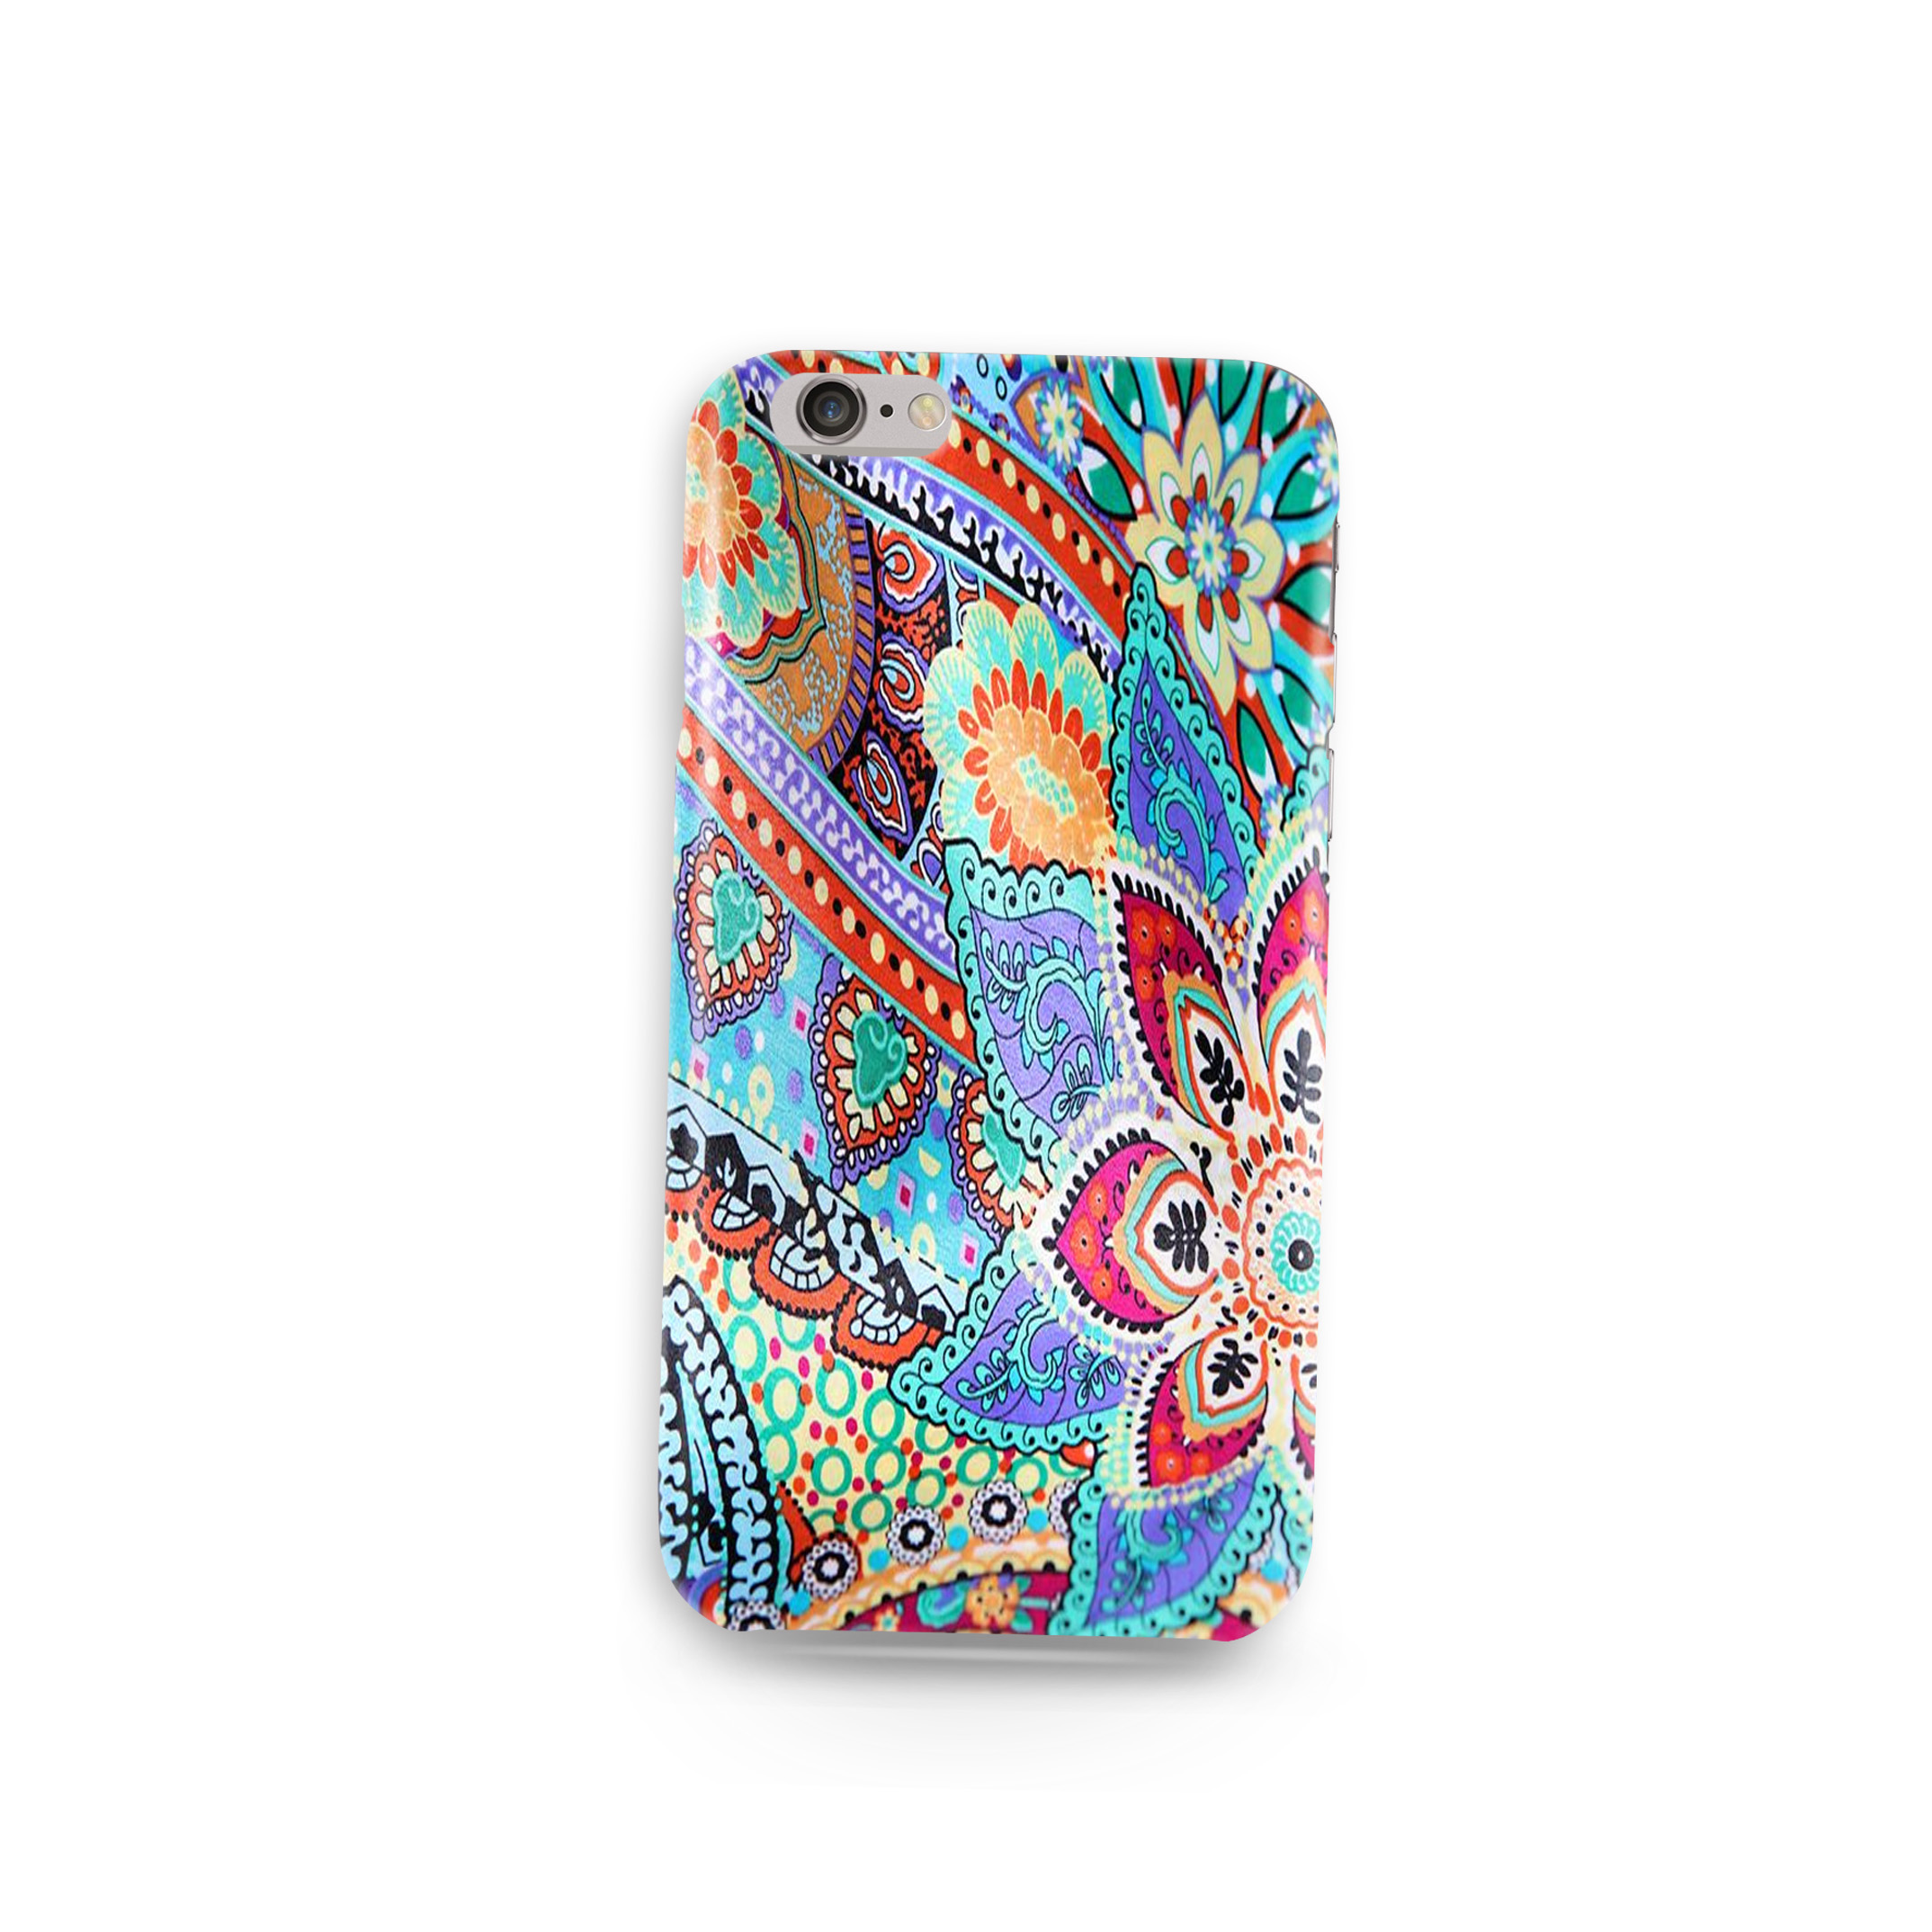 Bohemians Silicon Customized Mobile Phone Cover